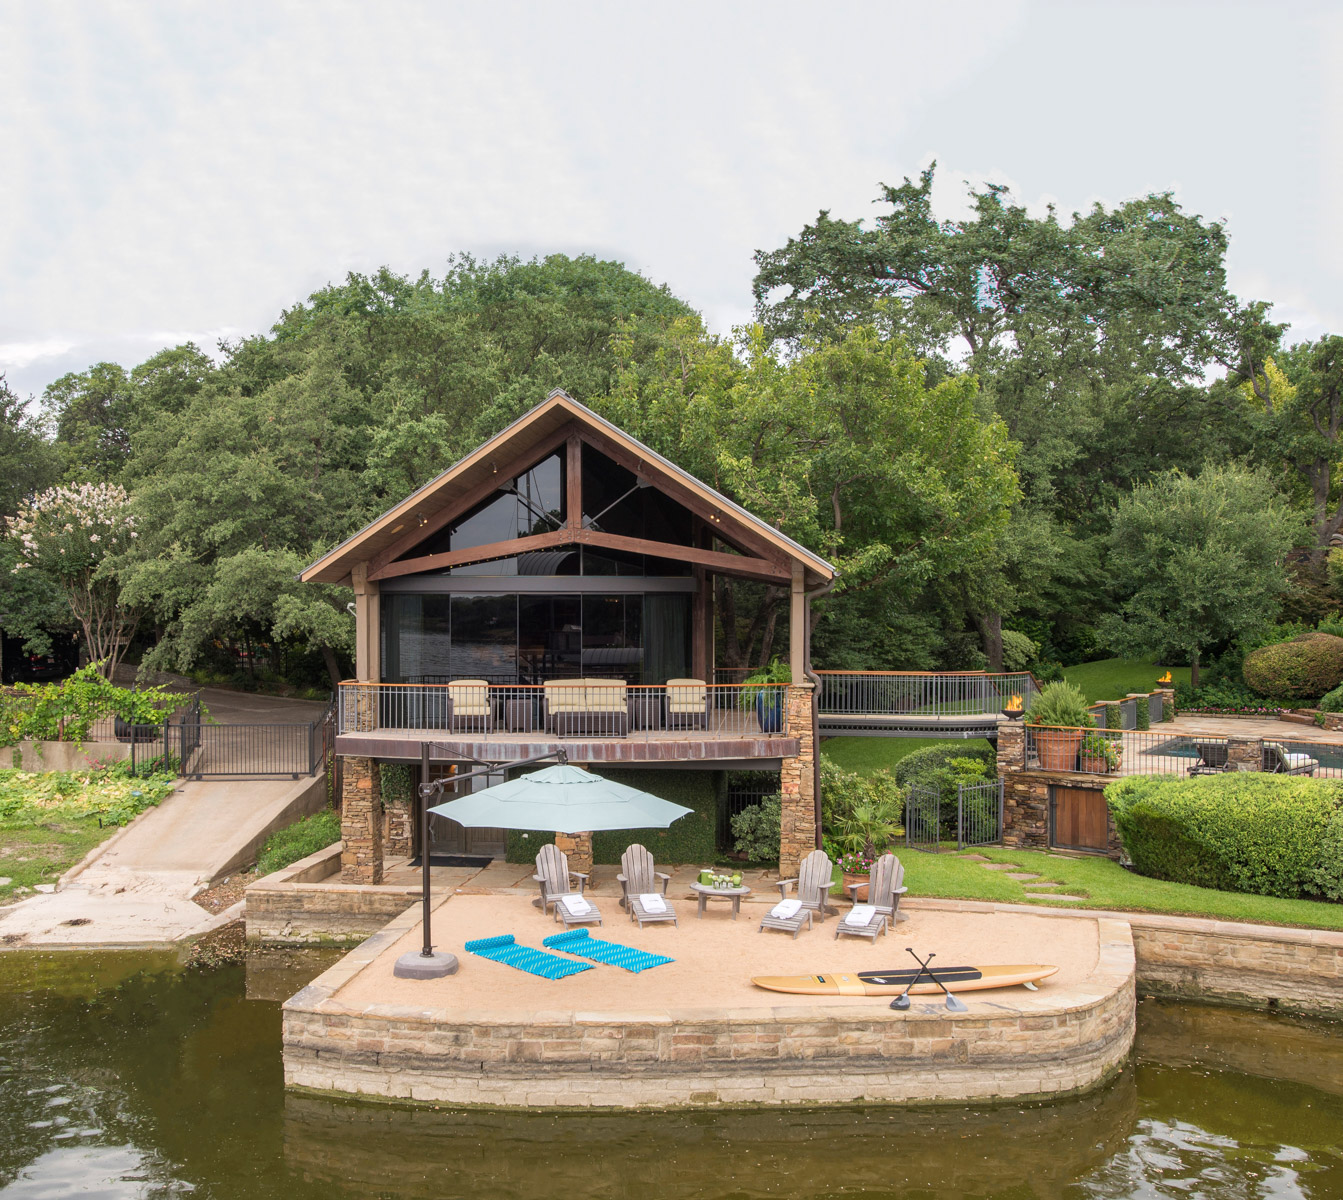 Luxury Lake Homes In Texas: Texas Billionaire Slashes Private Eagle Mountain Lake